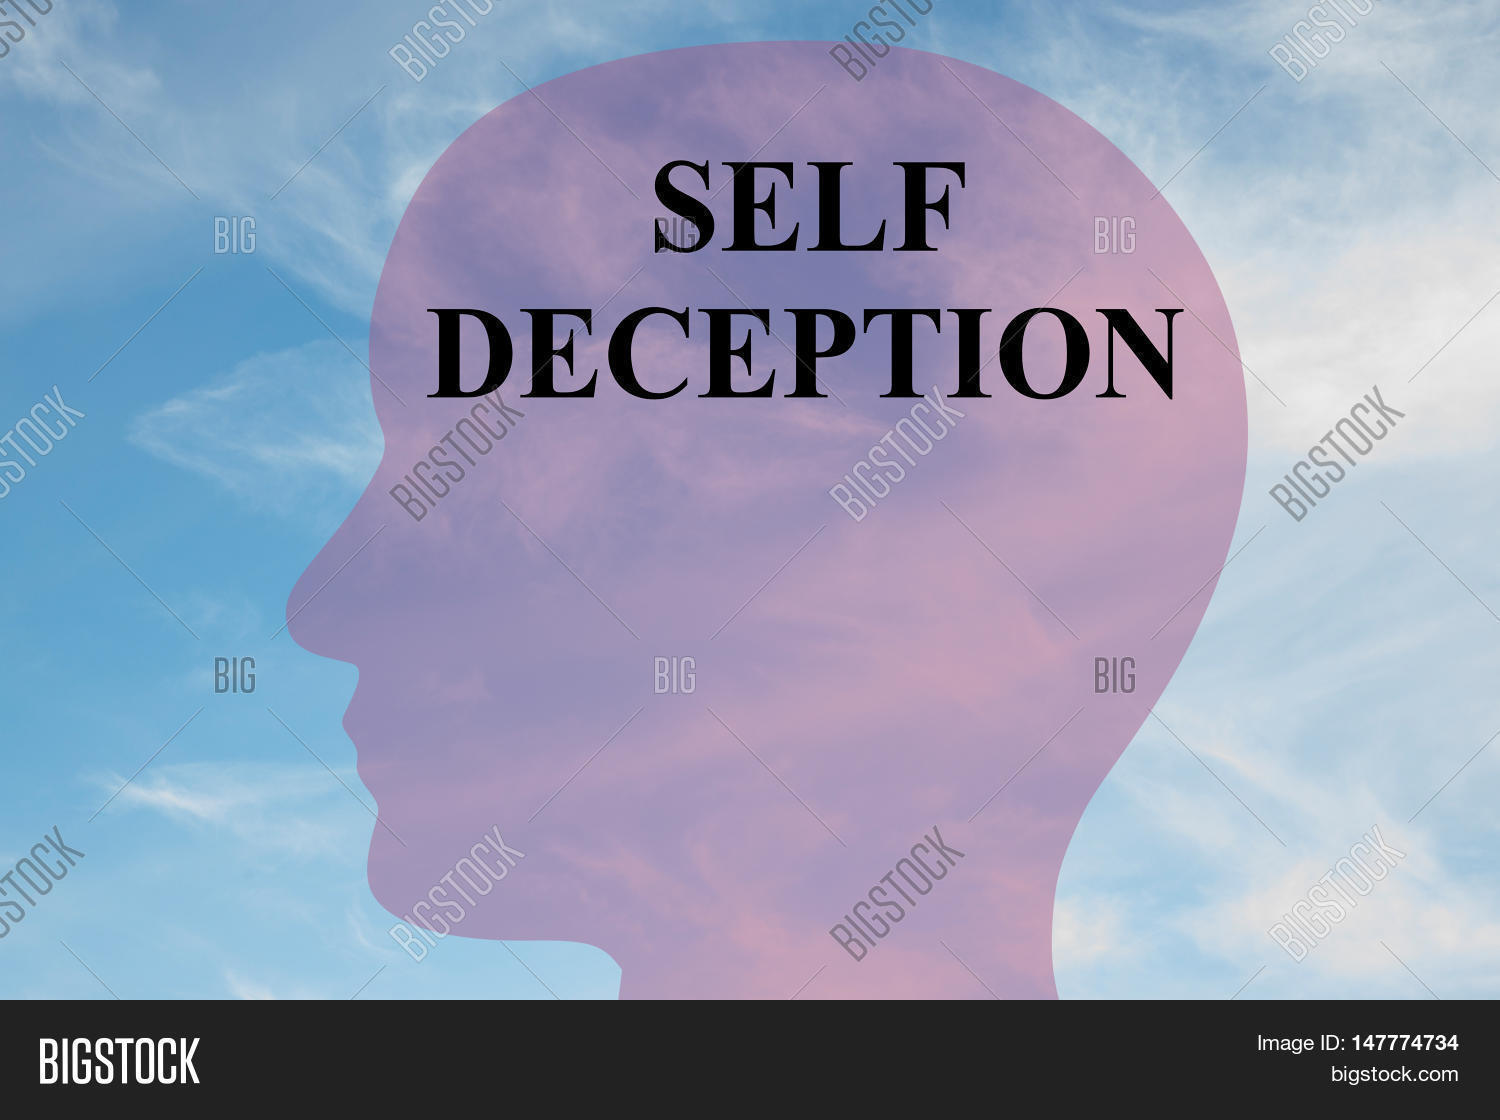 self deception Self deception 6,465 likes 43 talking about this manager: ida andersson ida@selfdeceptionse.